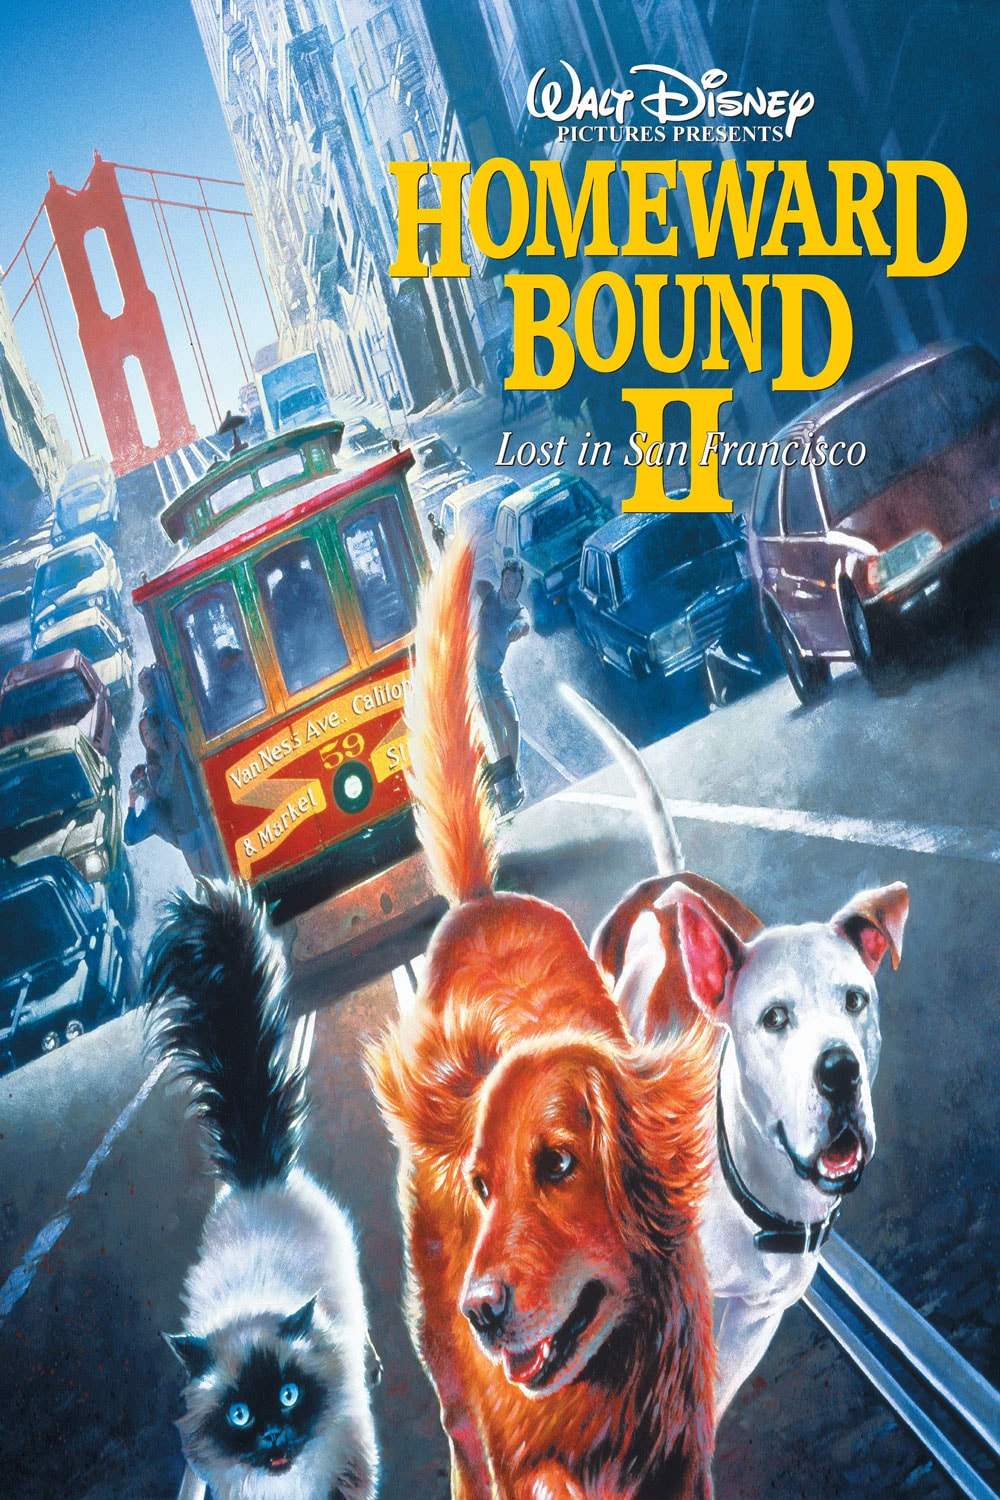 Tremendous Homeward Bound Lost San Francisco Disney Movies Watch Homeward Bound 2 123movies Watch Homeward Bound 3 San Francisco Homeward Bound Lost bark post Watch Homeward Bound